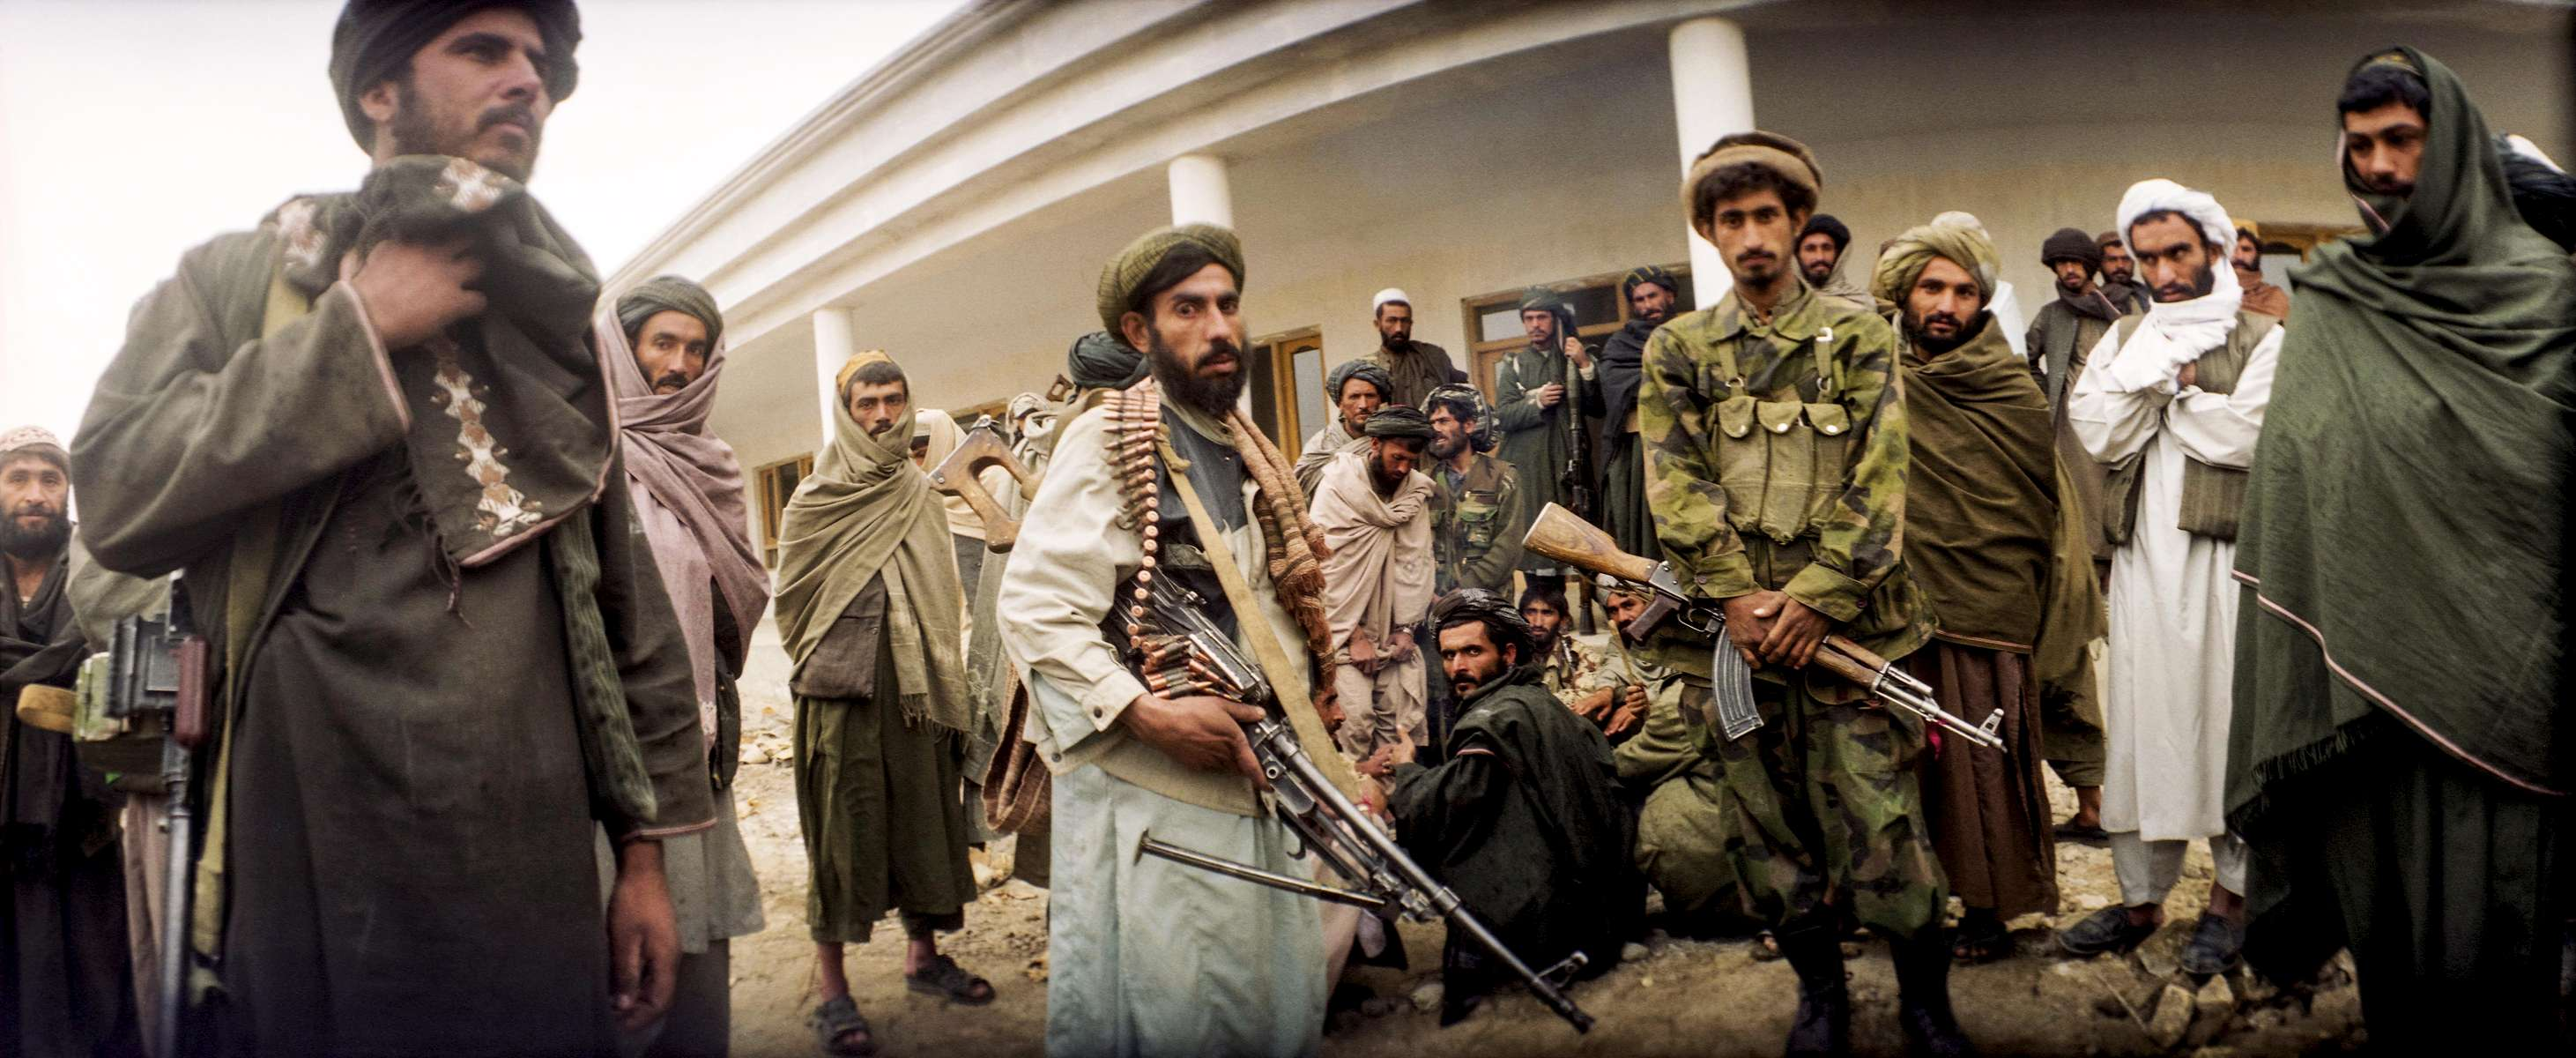 Men stand outside the governor's house hours after the fall of the Taliban,in Kandahar, December 2001.